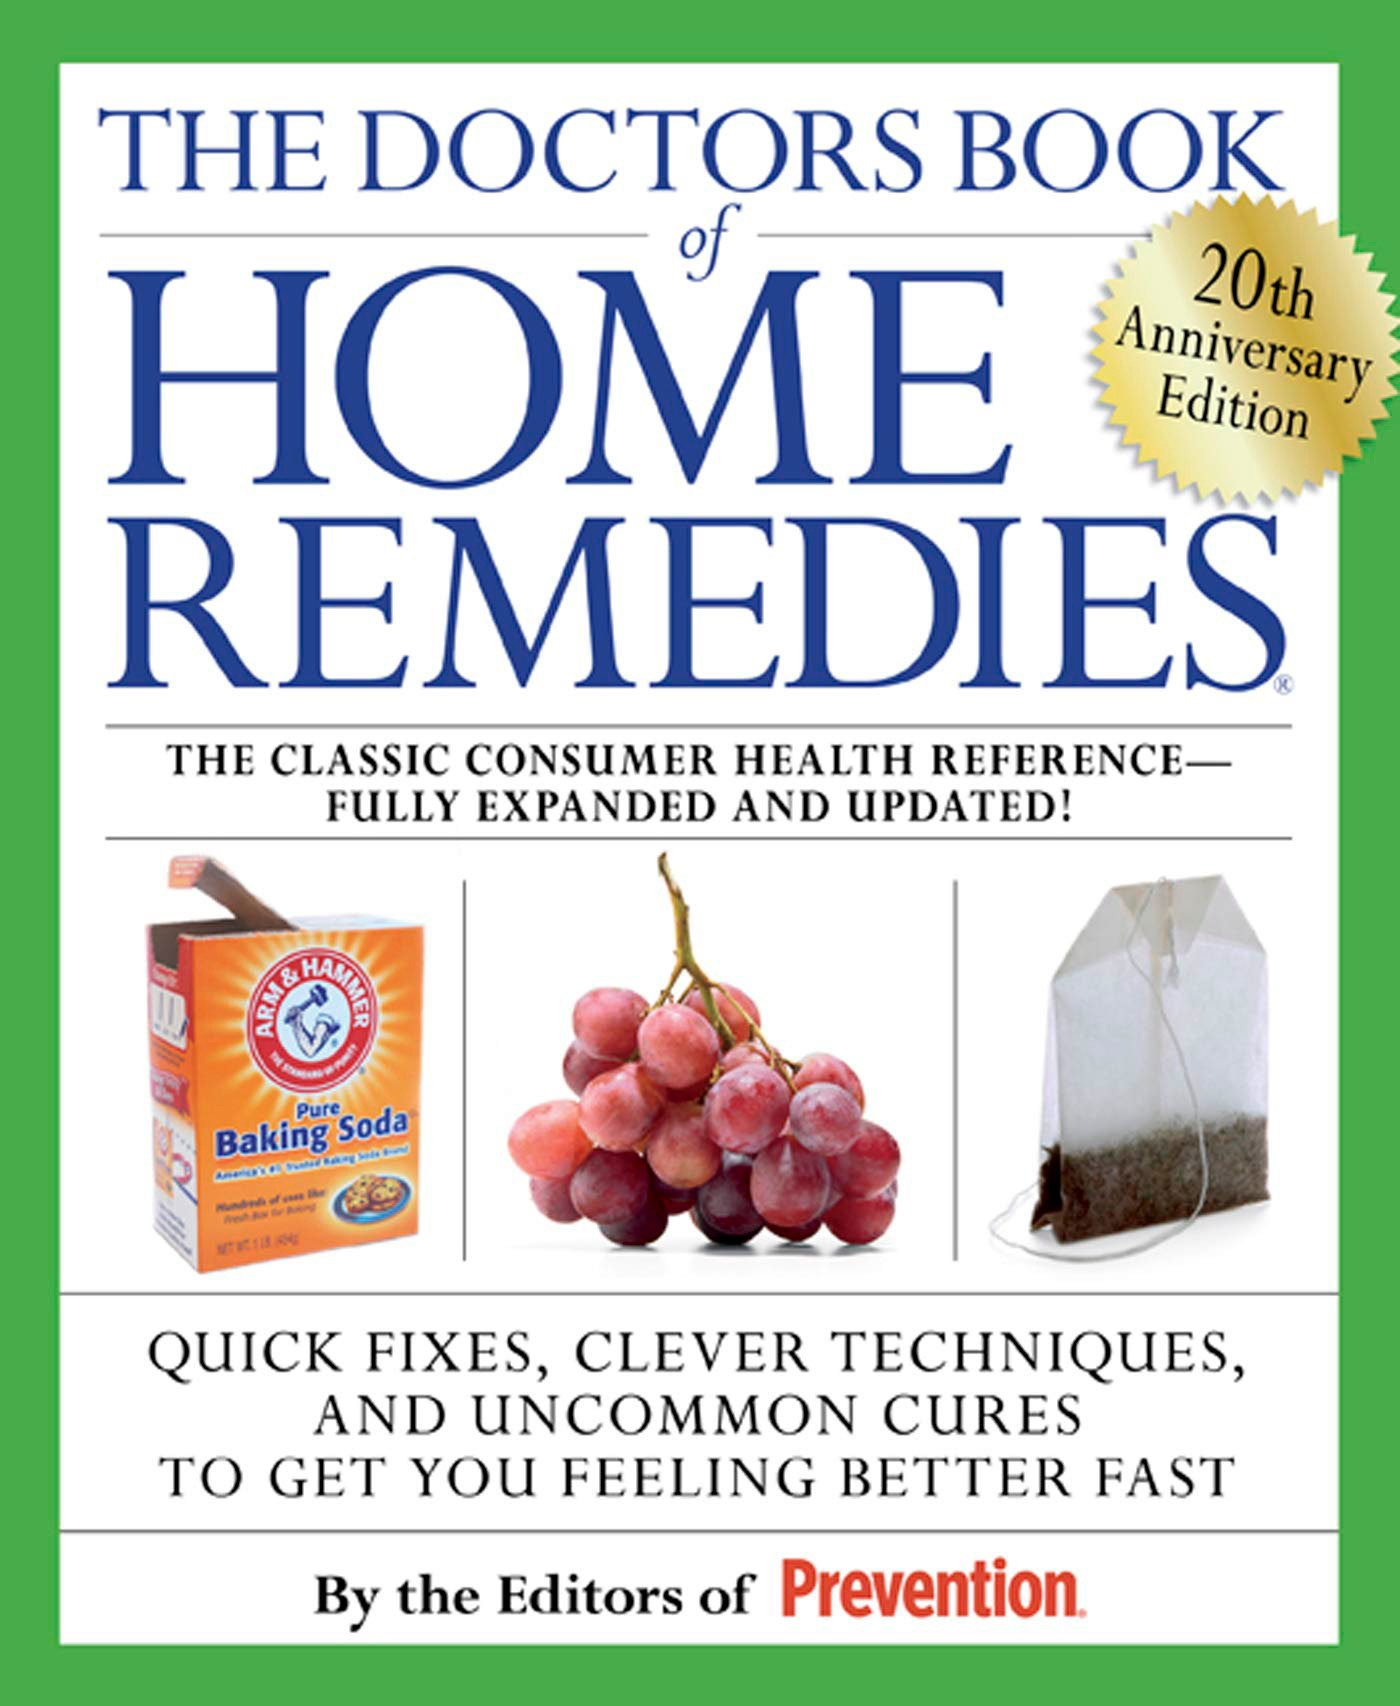 The Doctors Book of Home Remedies: Quick Fixes, Clever Techniques, and Uncommon Cures to Get You Feeling Better Fast Paperback – March 2, 2010 Prevention Magazine Editors Rodale Books 1605298662 Alternative Therapies